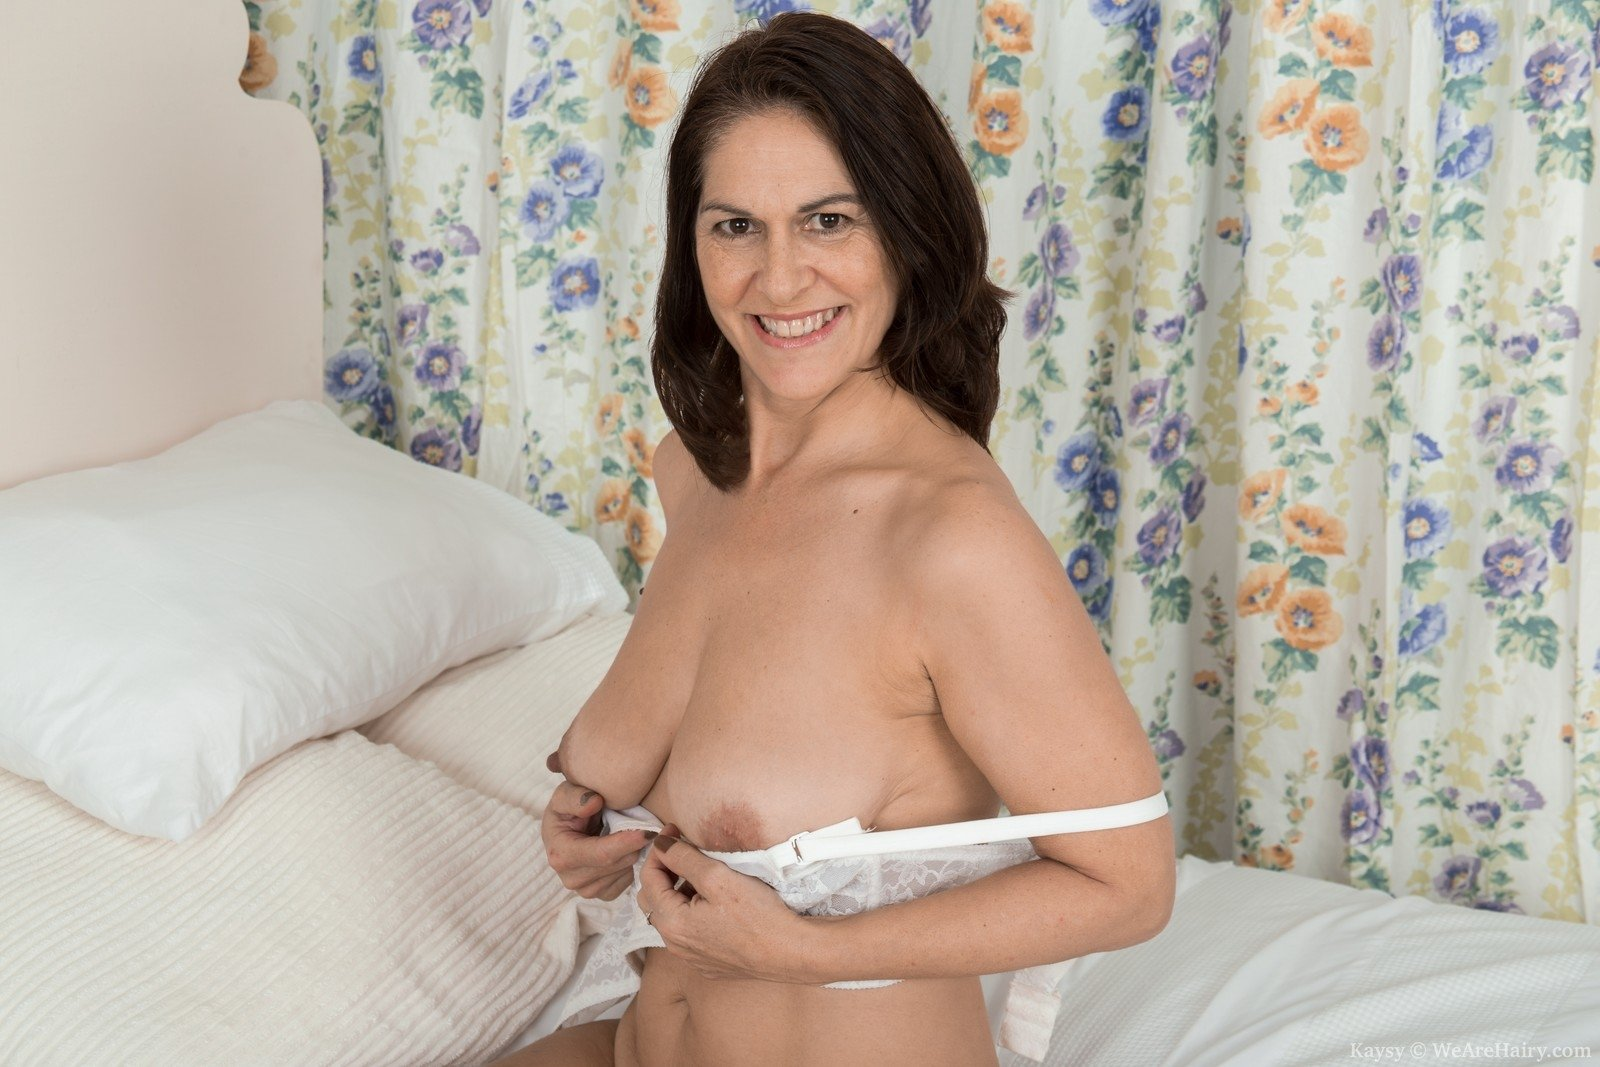 xxx hot nurse videos Shaved side and nape